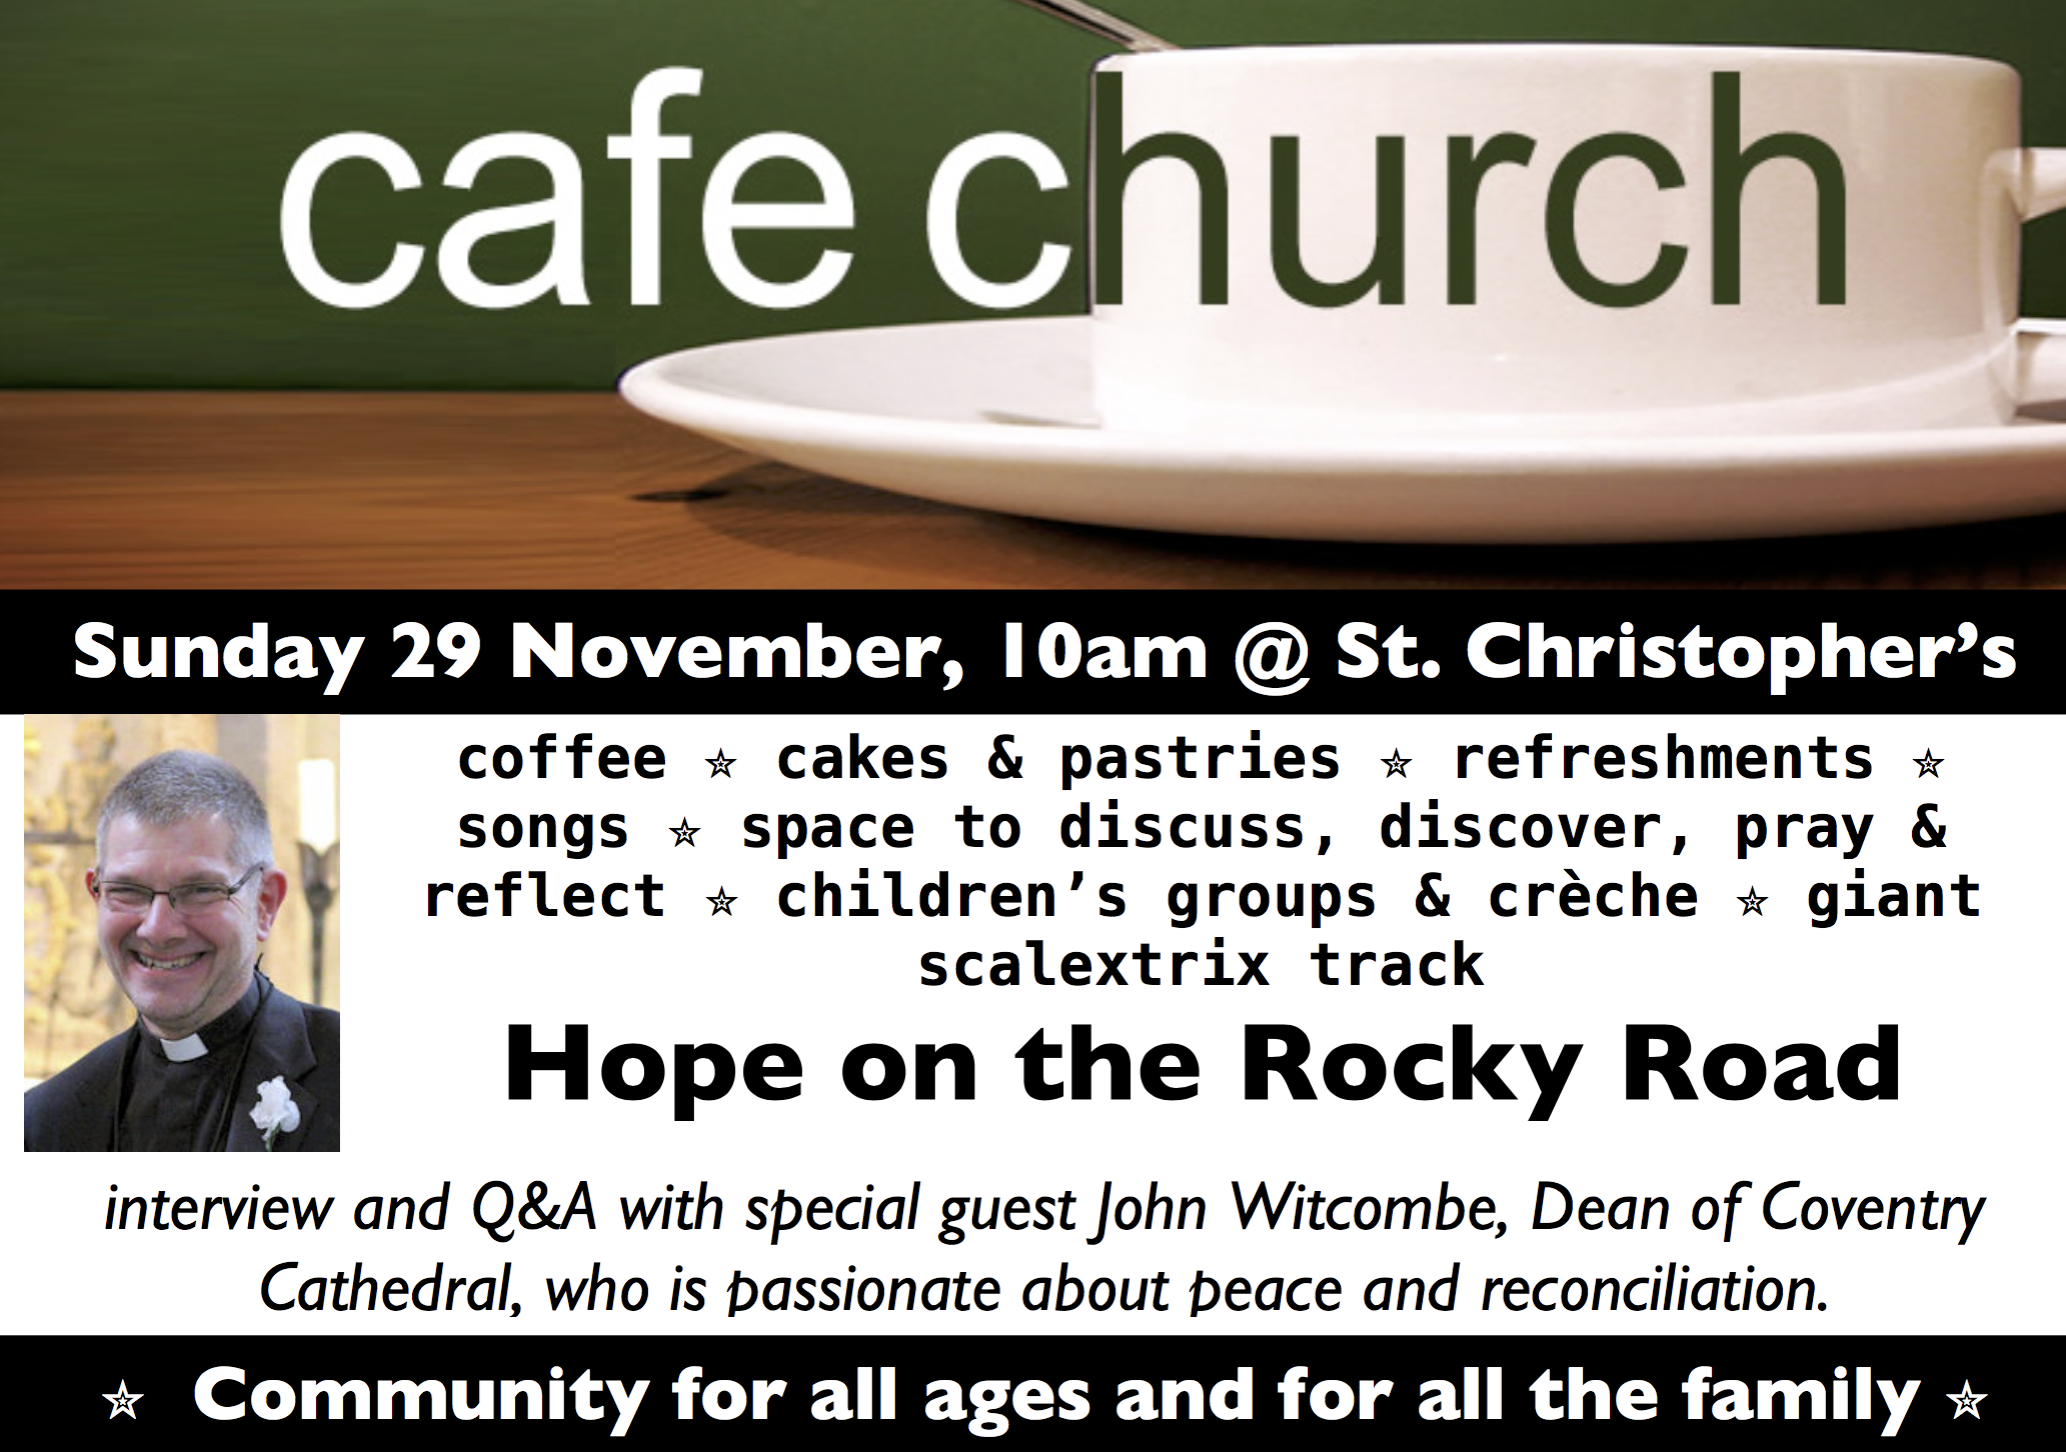 cafe church flyer - advent